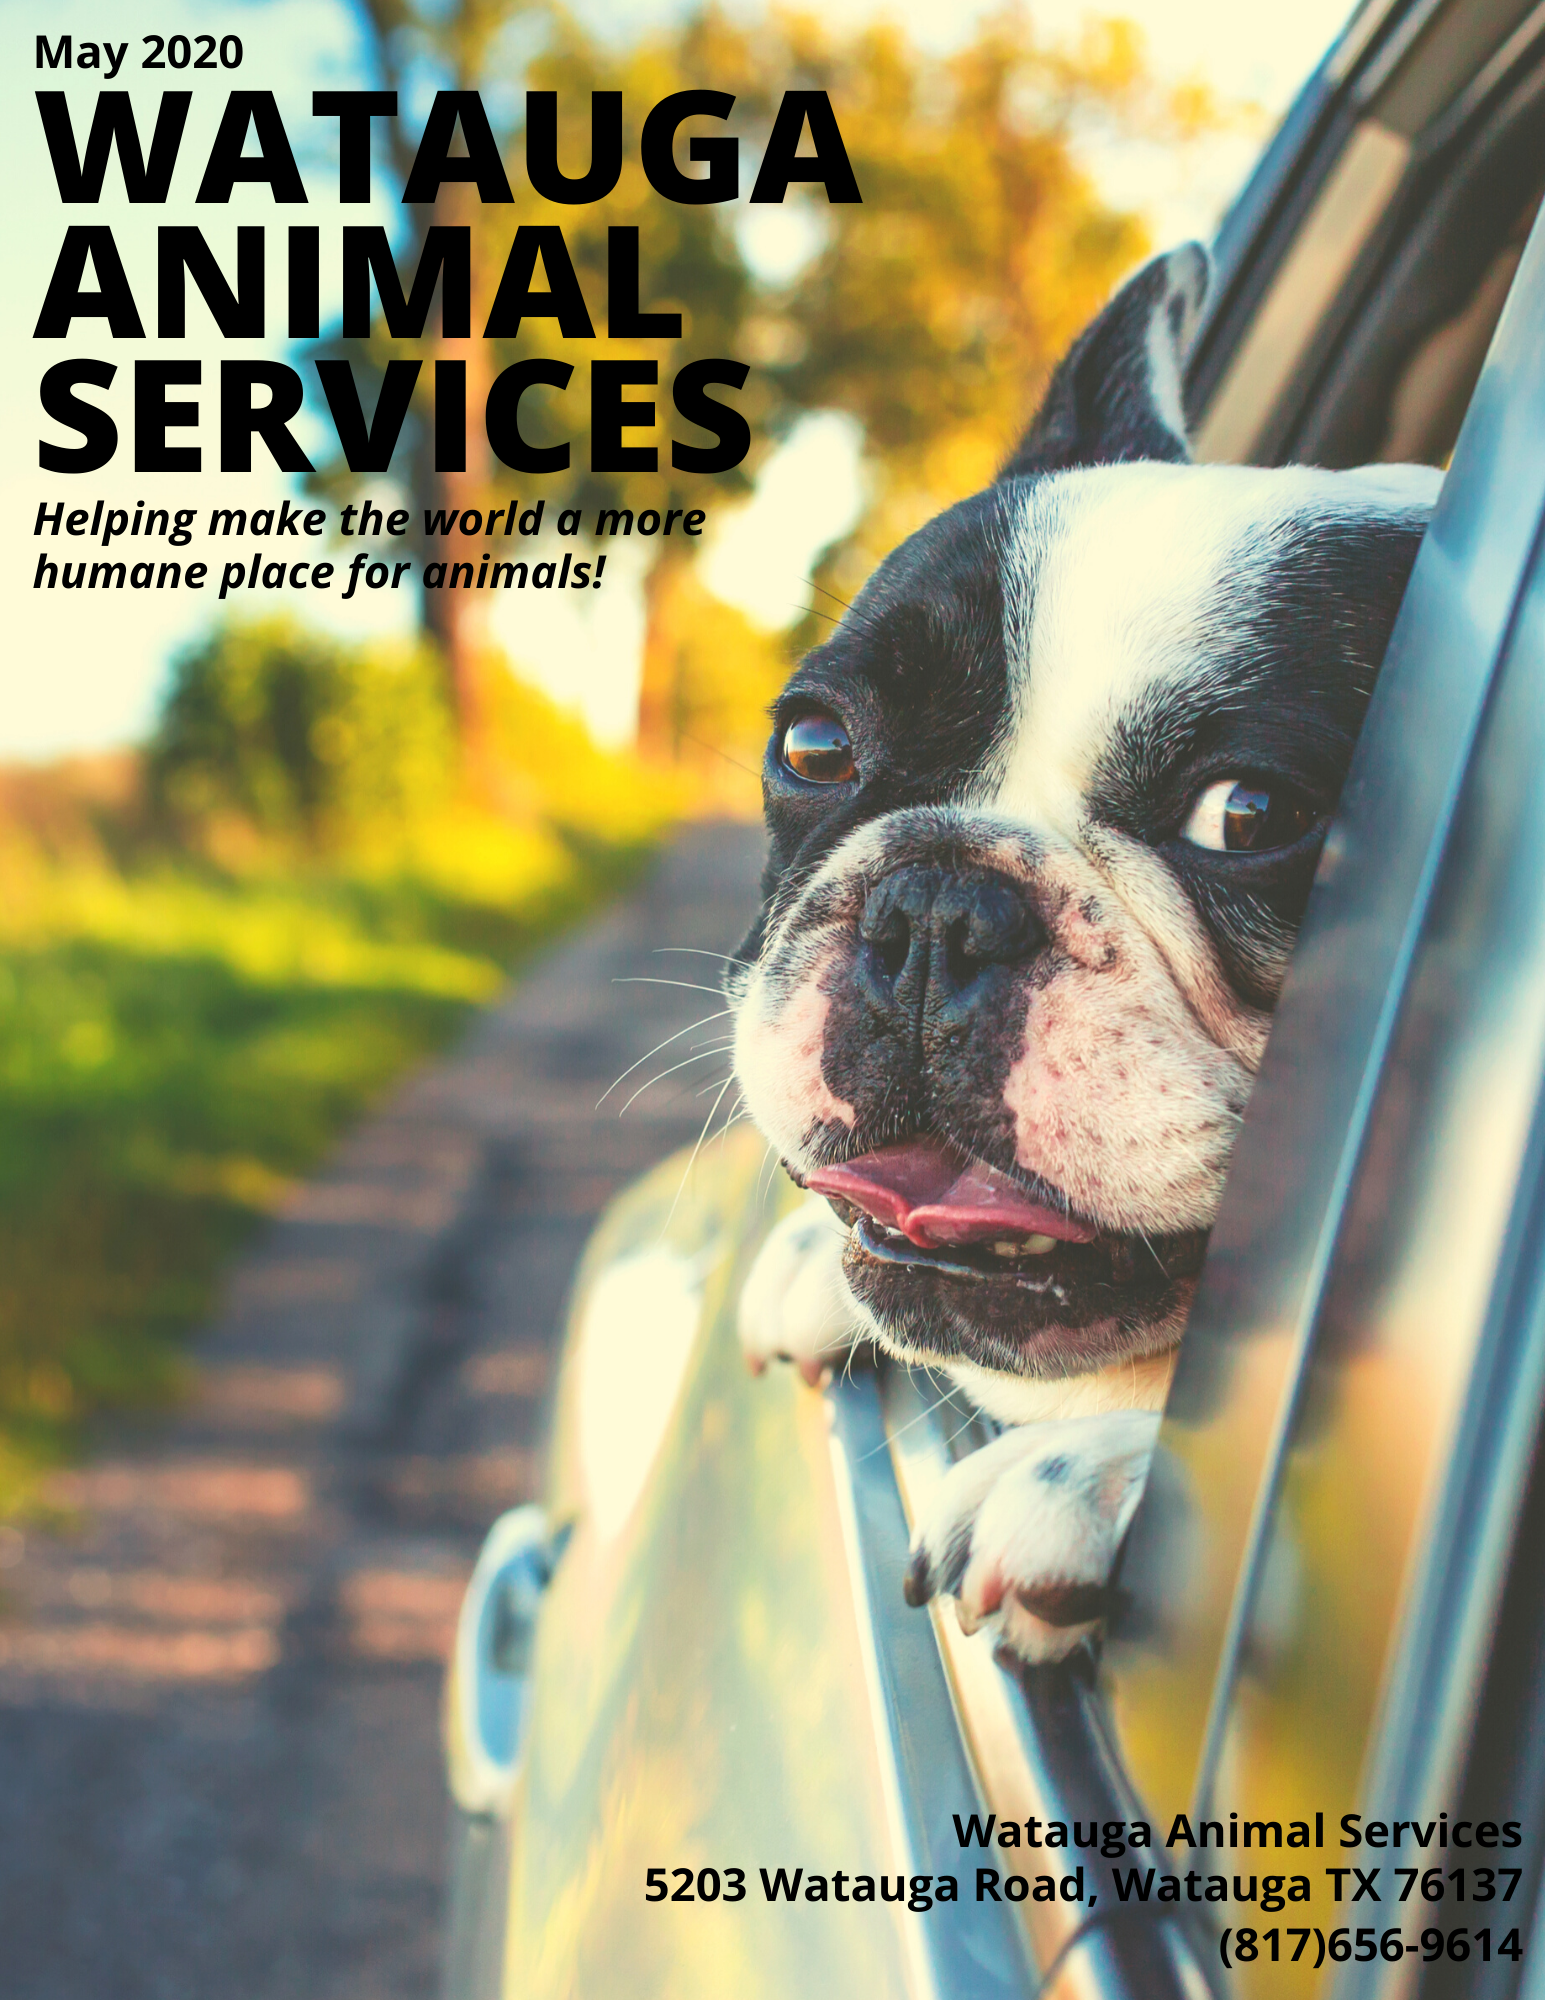 WATAUGA ANIMAL SERVICES May 2020 Cover